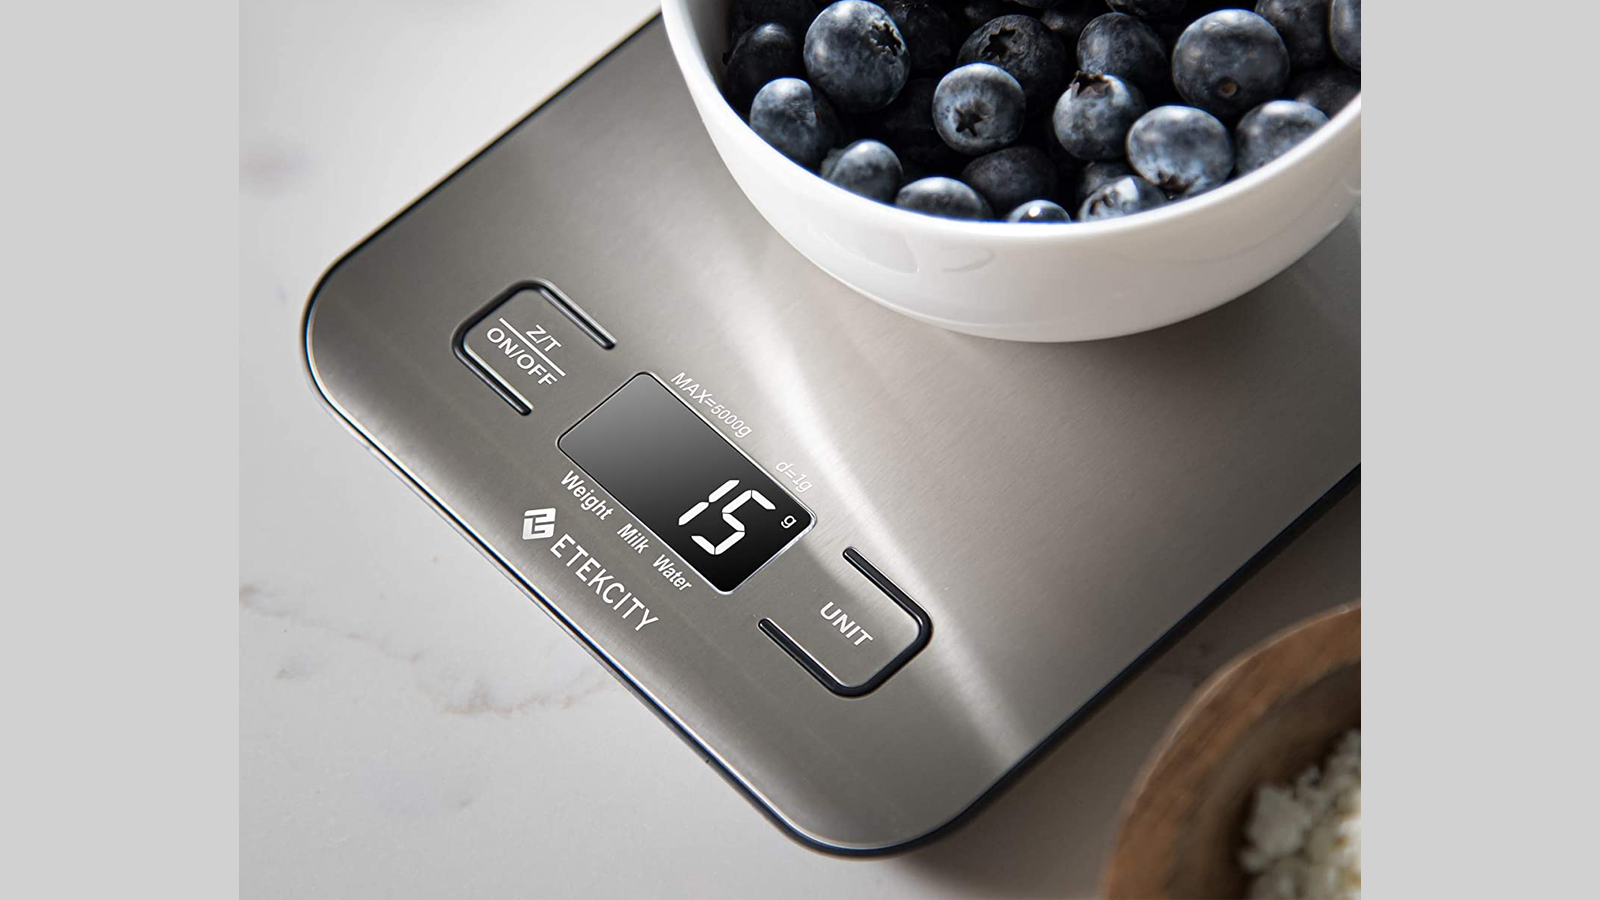 Measure Food, Spices, Liquids and More with This Slim Kitchen Scale